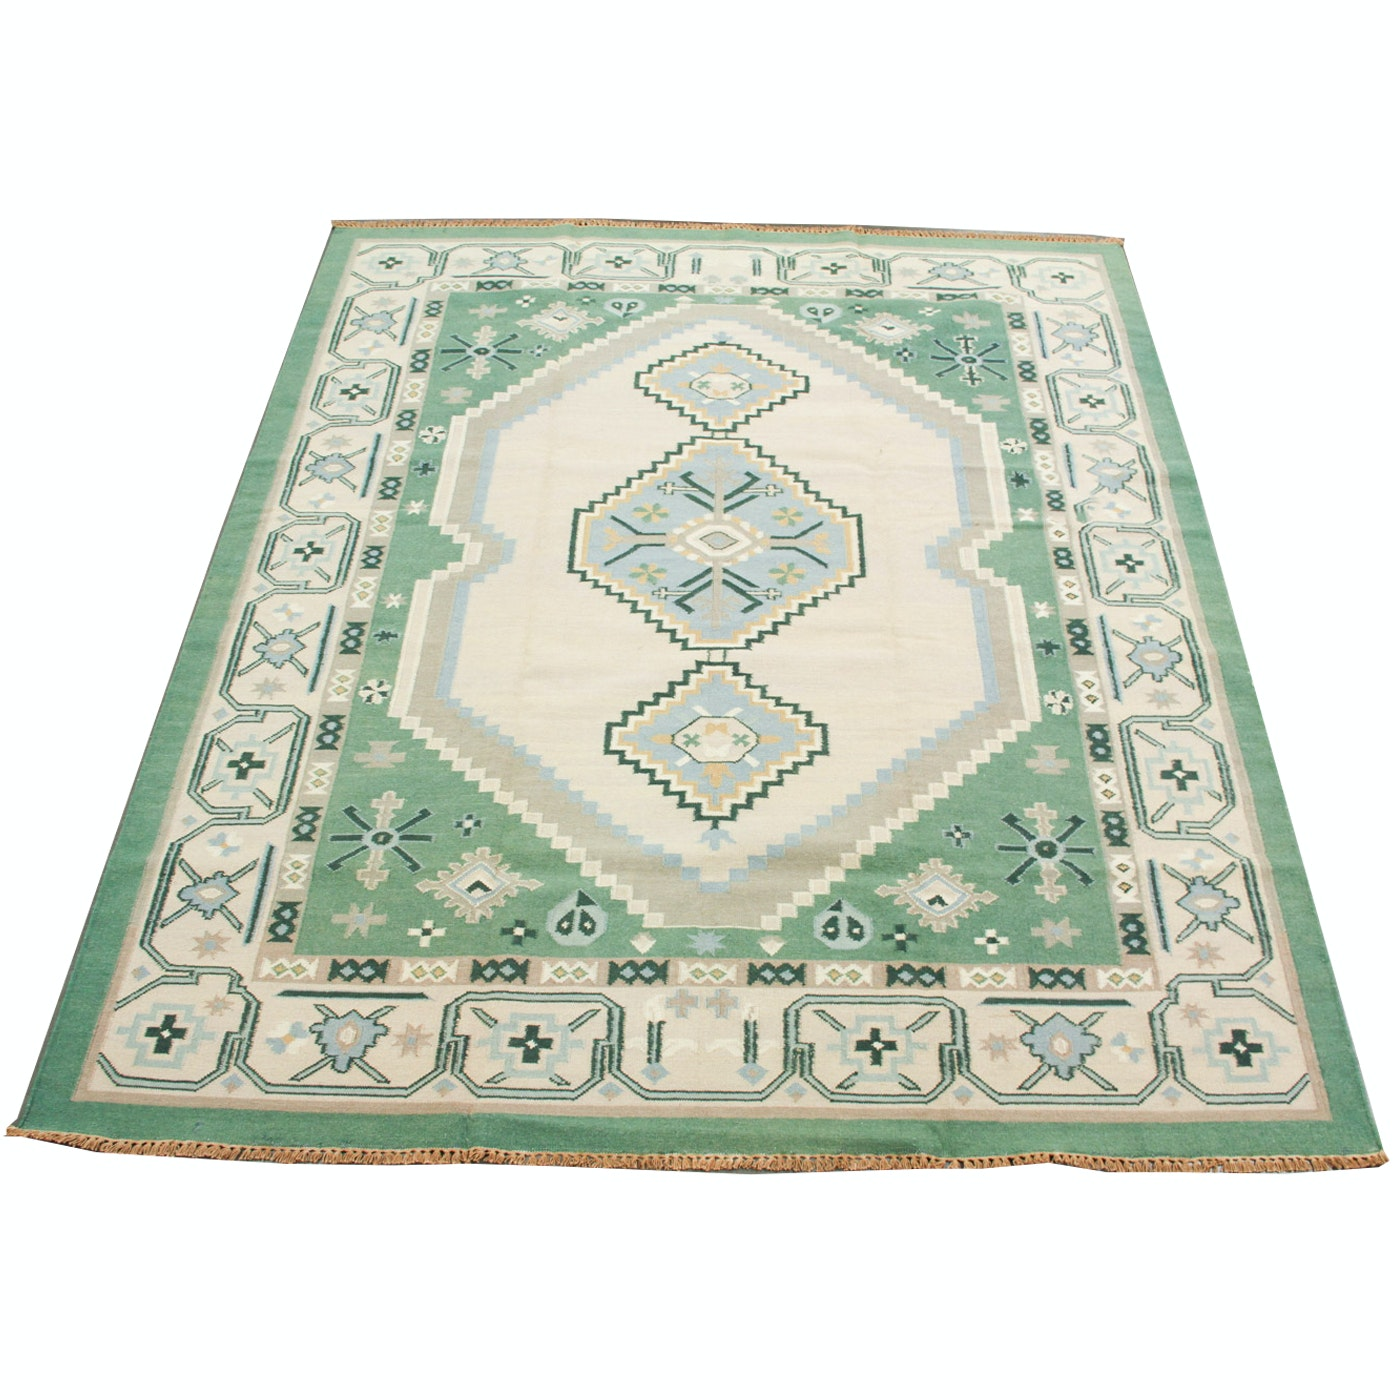 Hand-Woven Indian Dhurrie Area Rug